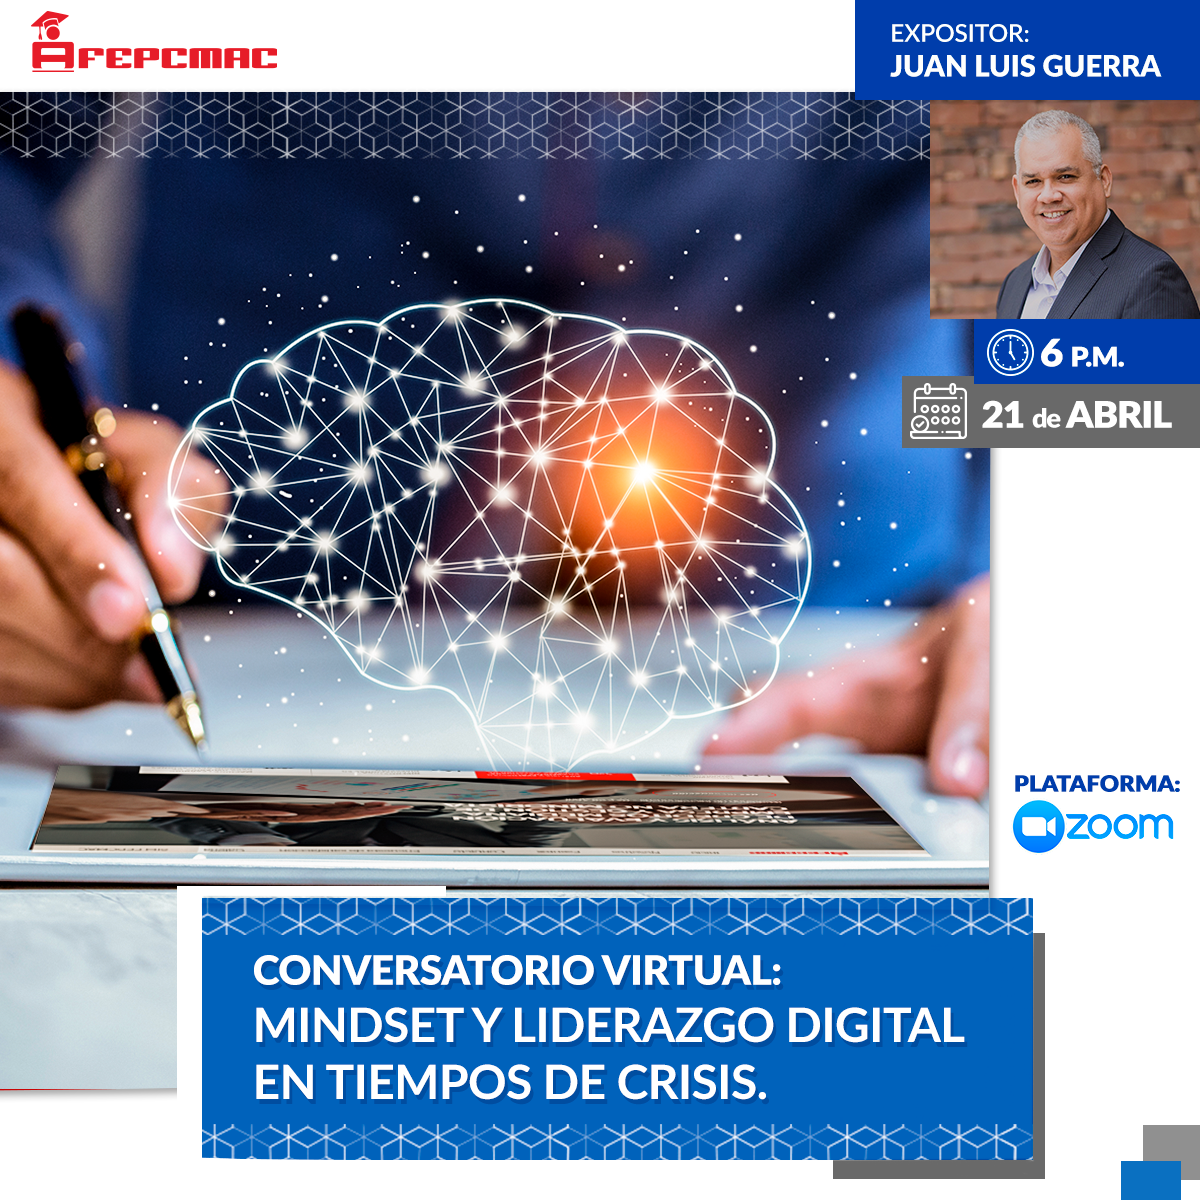 Conversatorio_Virtual-_new_WEBINAR-_F._EVENTO